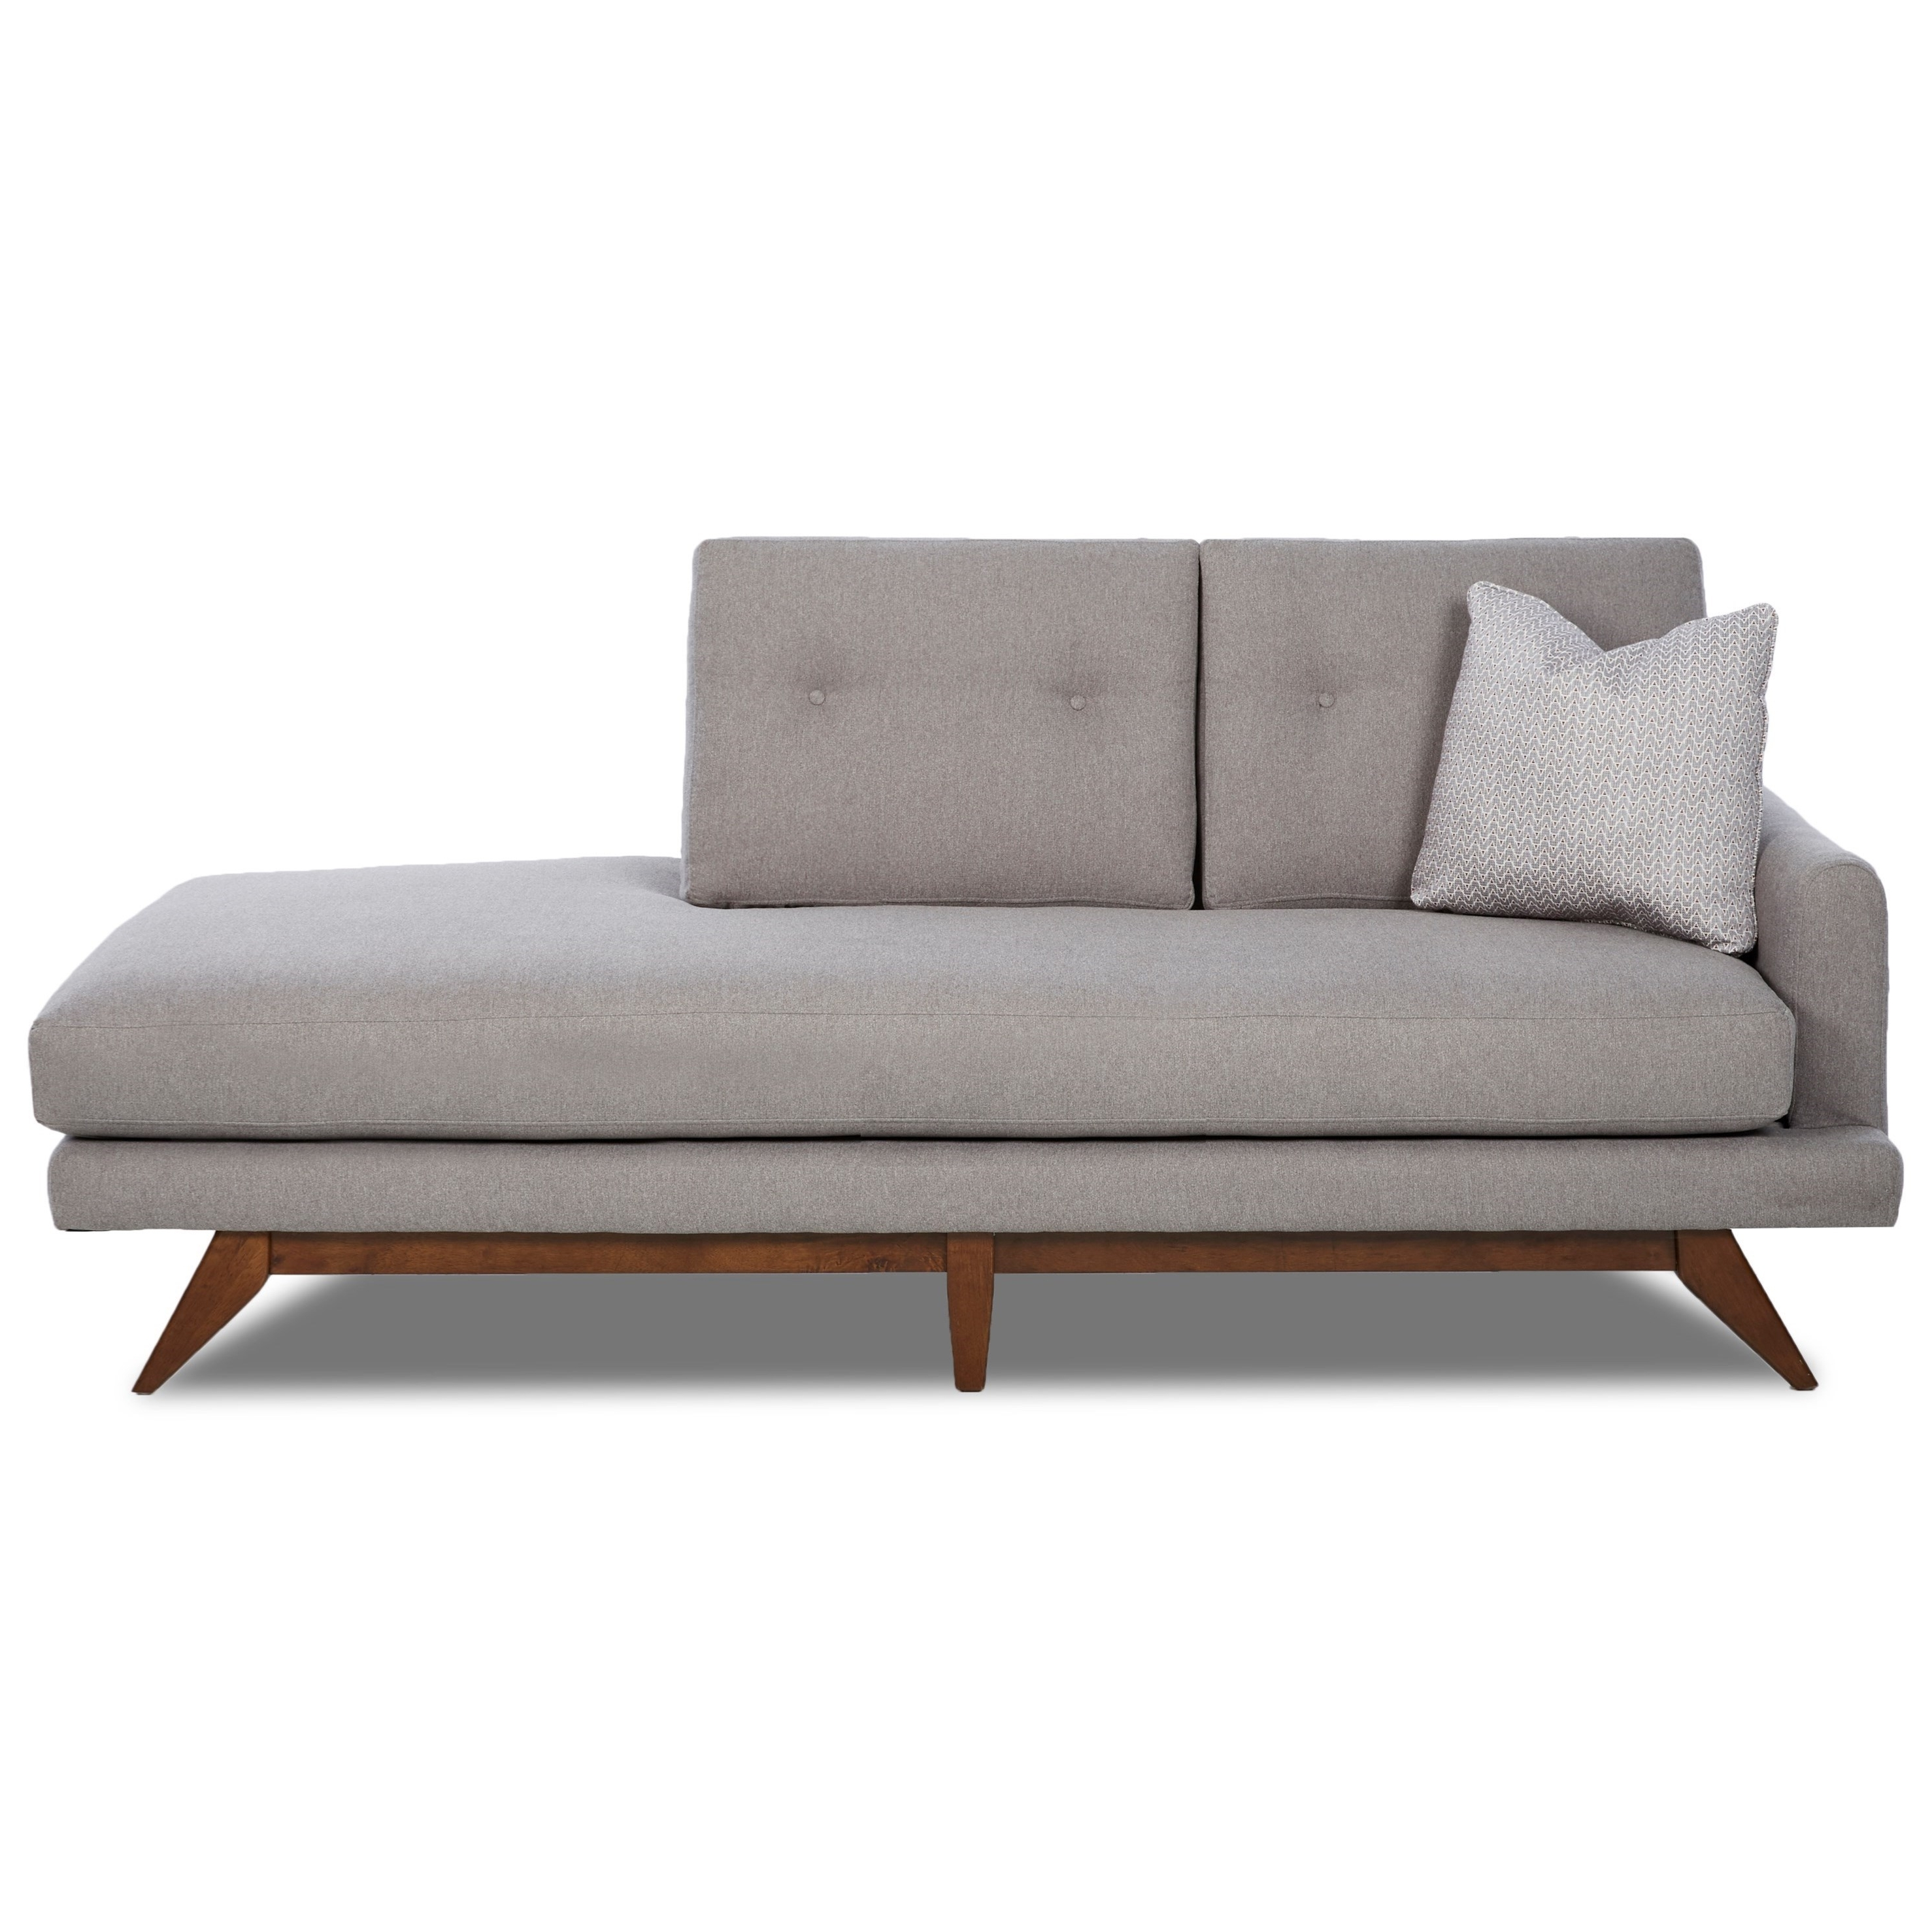 2018 Right Arm Chaise Lounges Inside Chase Furniture (View 1 of 15)